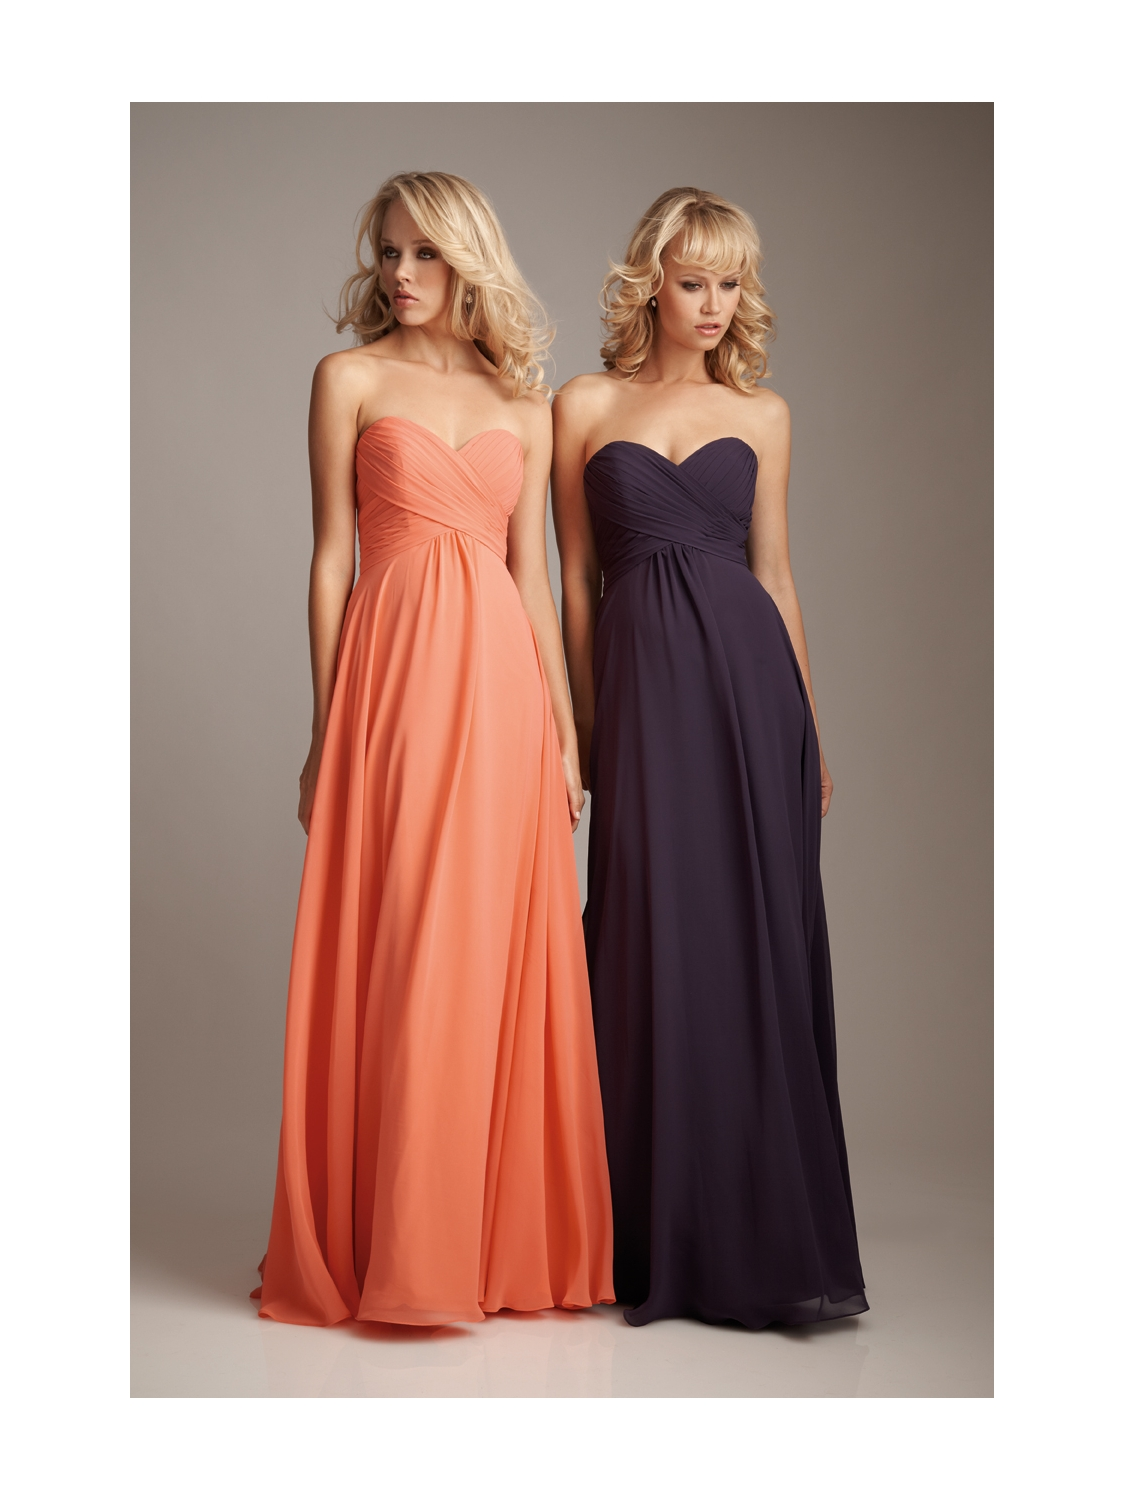 Allure bridesmaids bridesmaid dress style 1221 house of brides select color ombrellifo Images